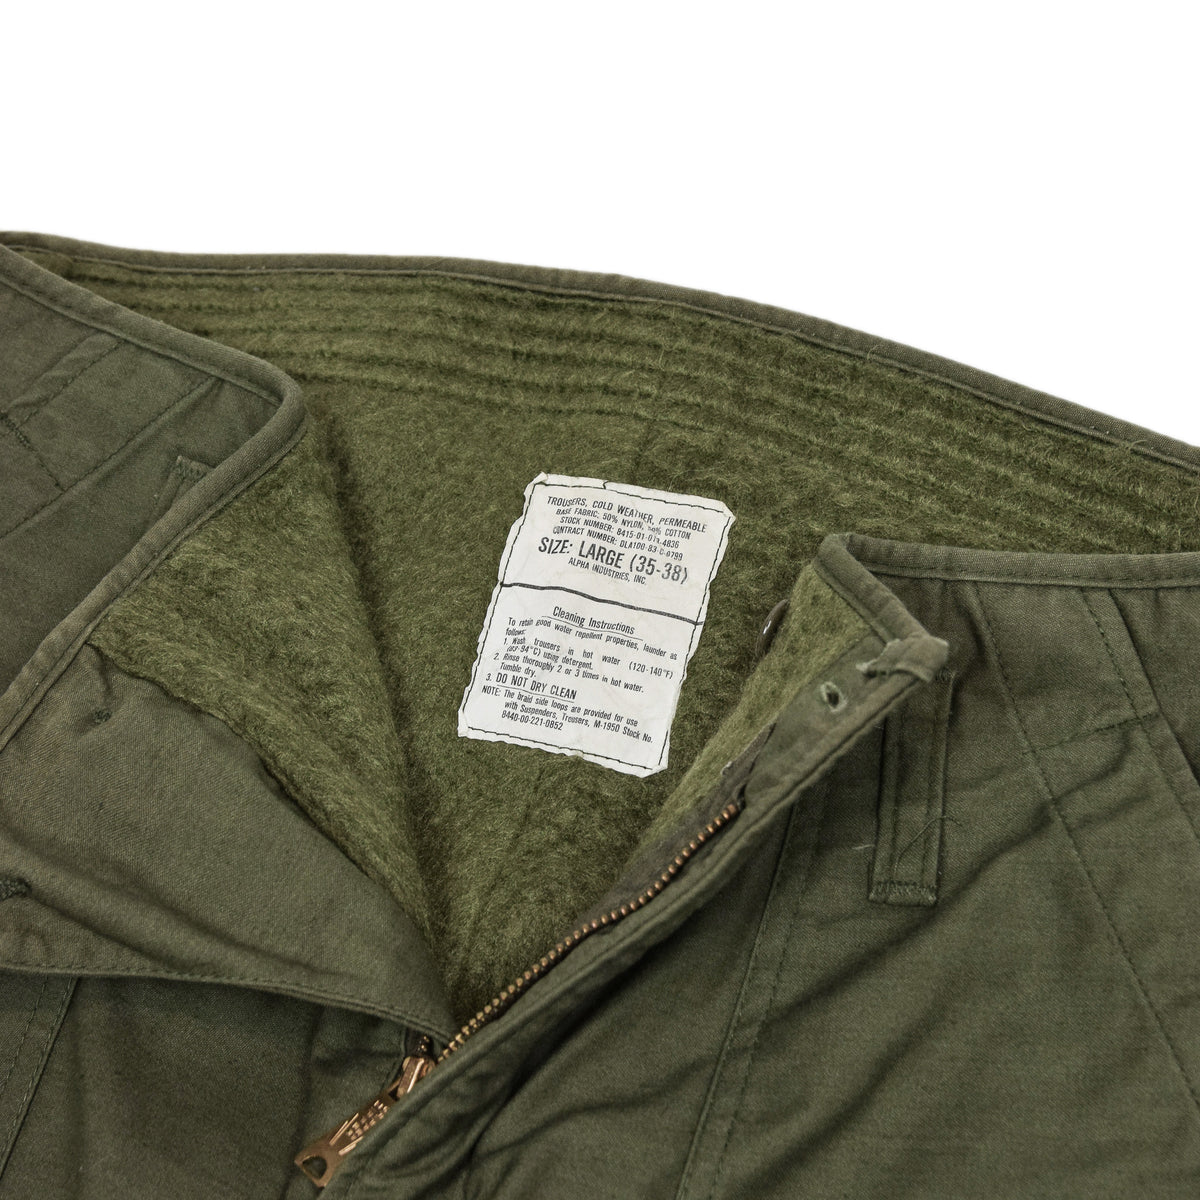 Vintage Alpha Industries 80s US Army Cold Weather Permeable Military Trousers L internal label